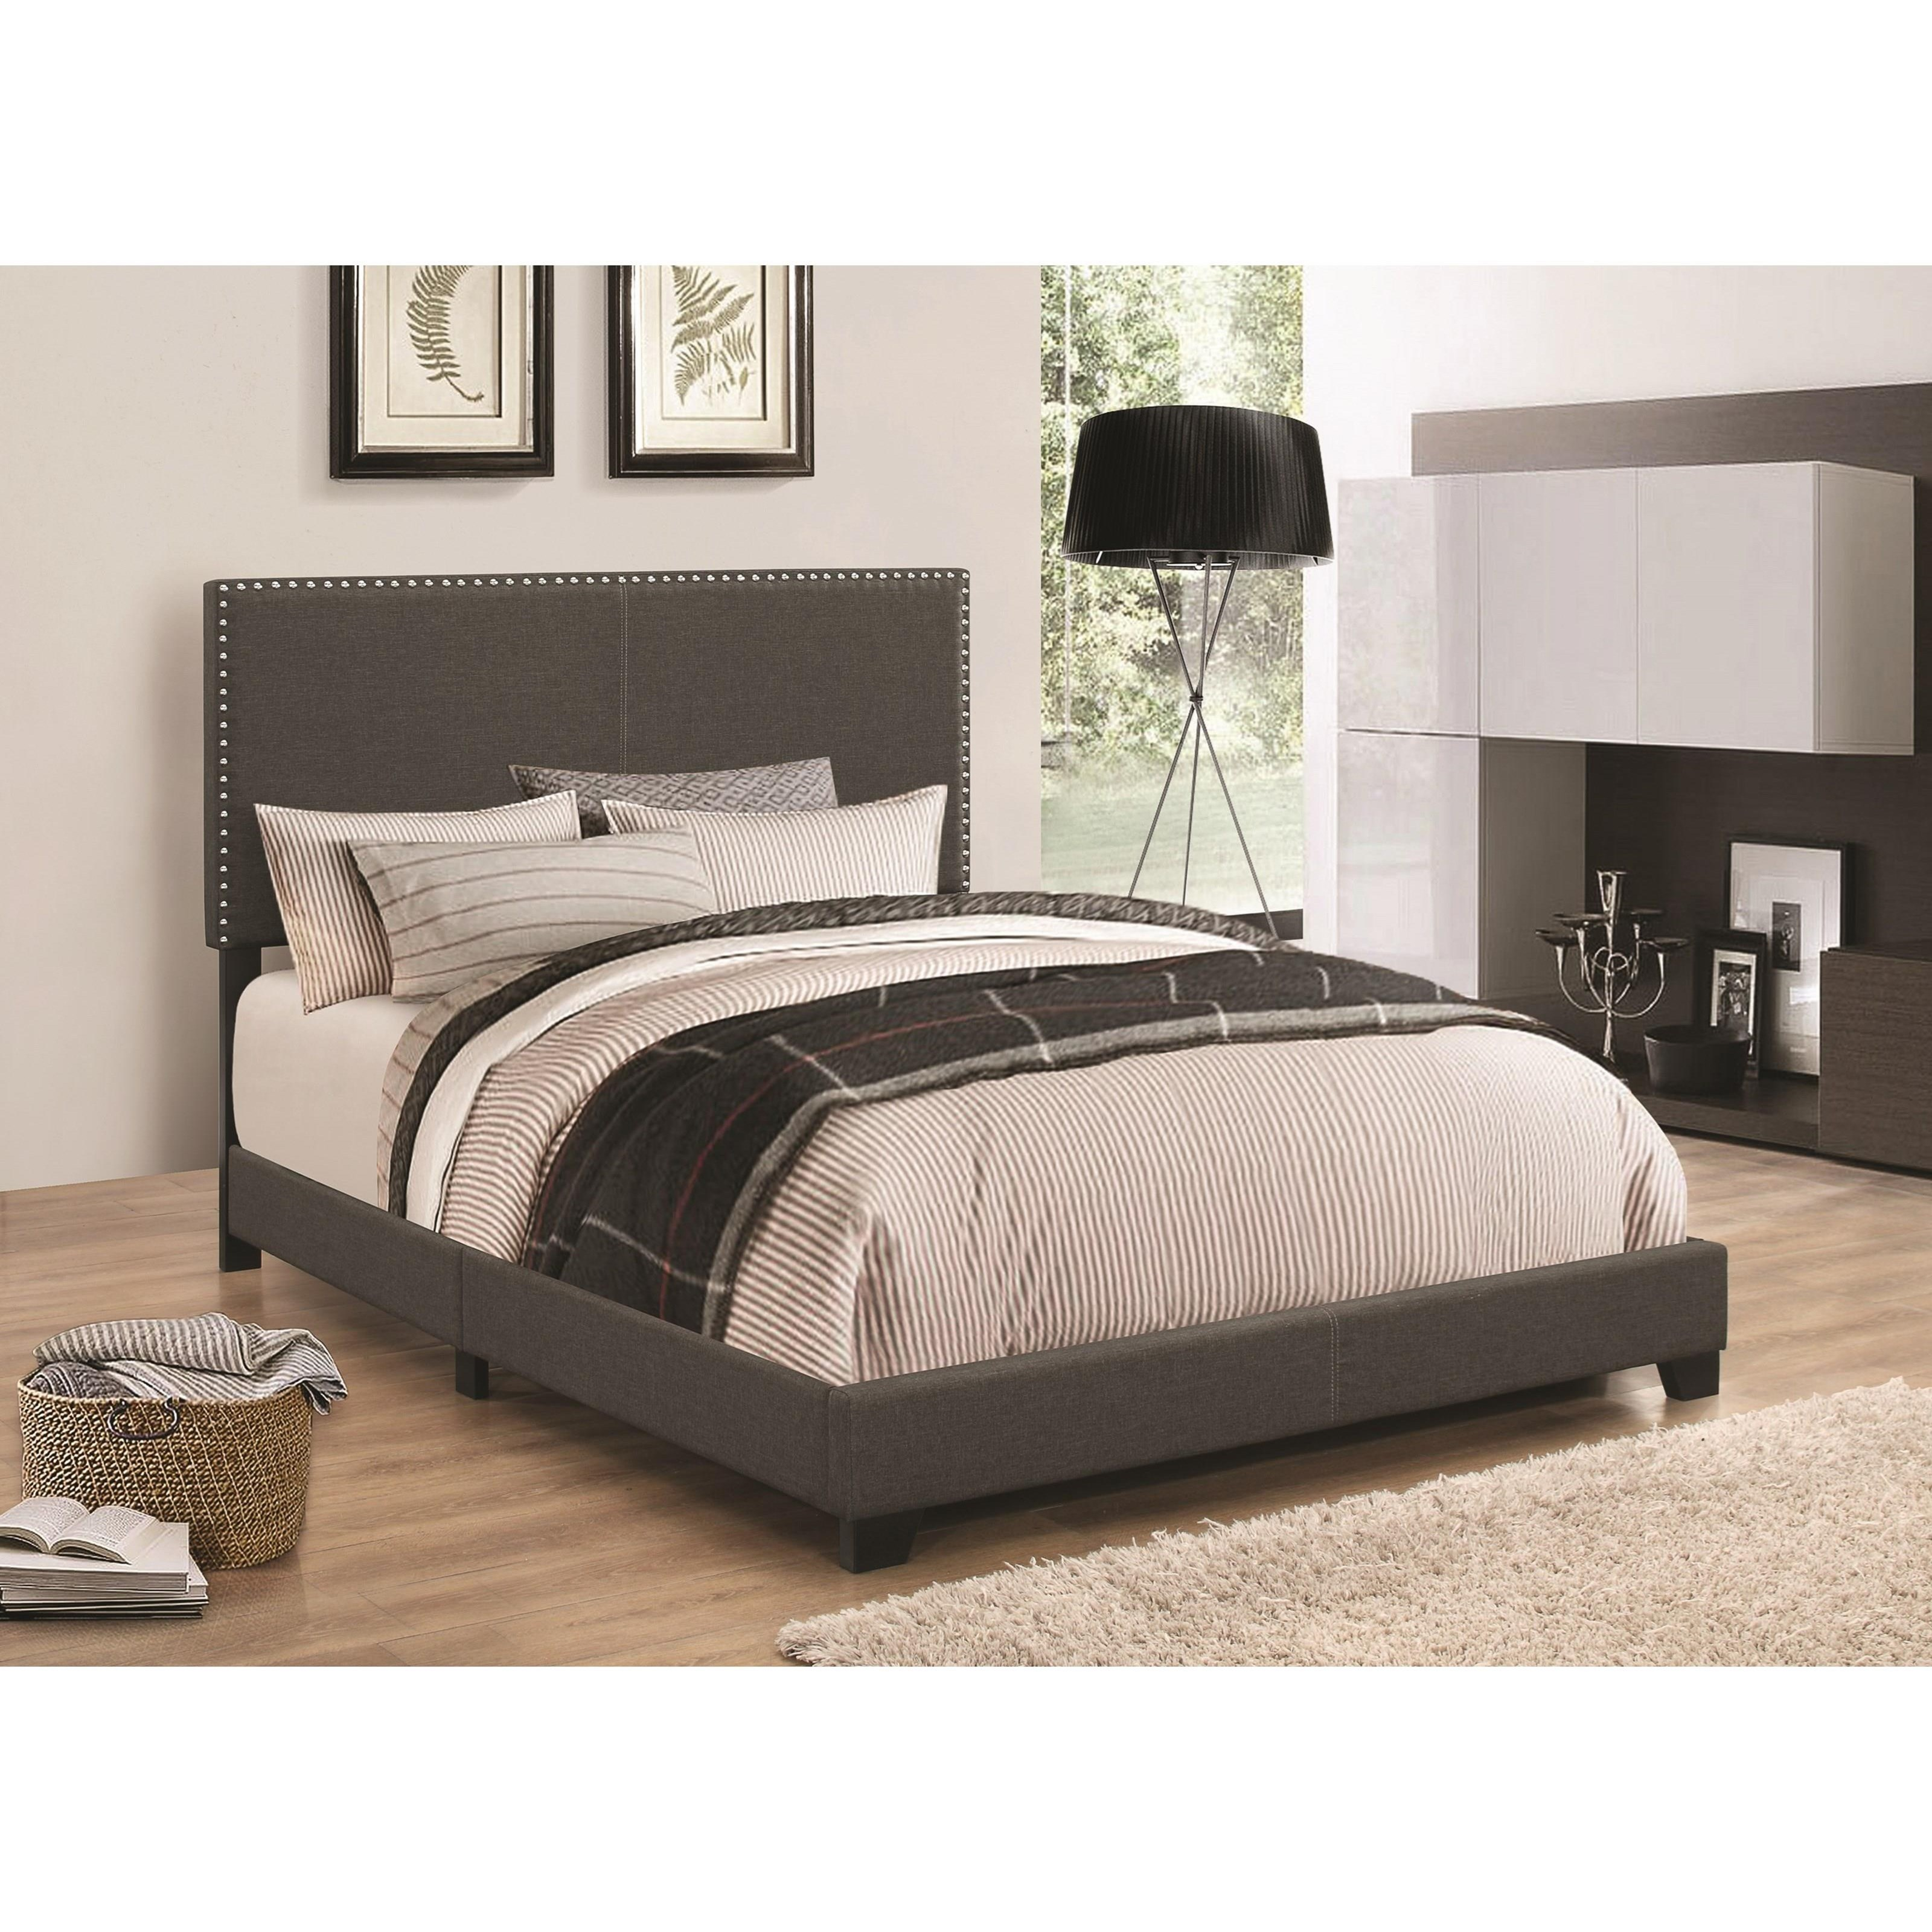 Upholstered Beds Twin Bed by Coaster at Lapeer Furniture & Mattress Center